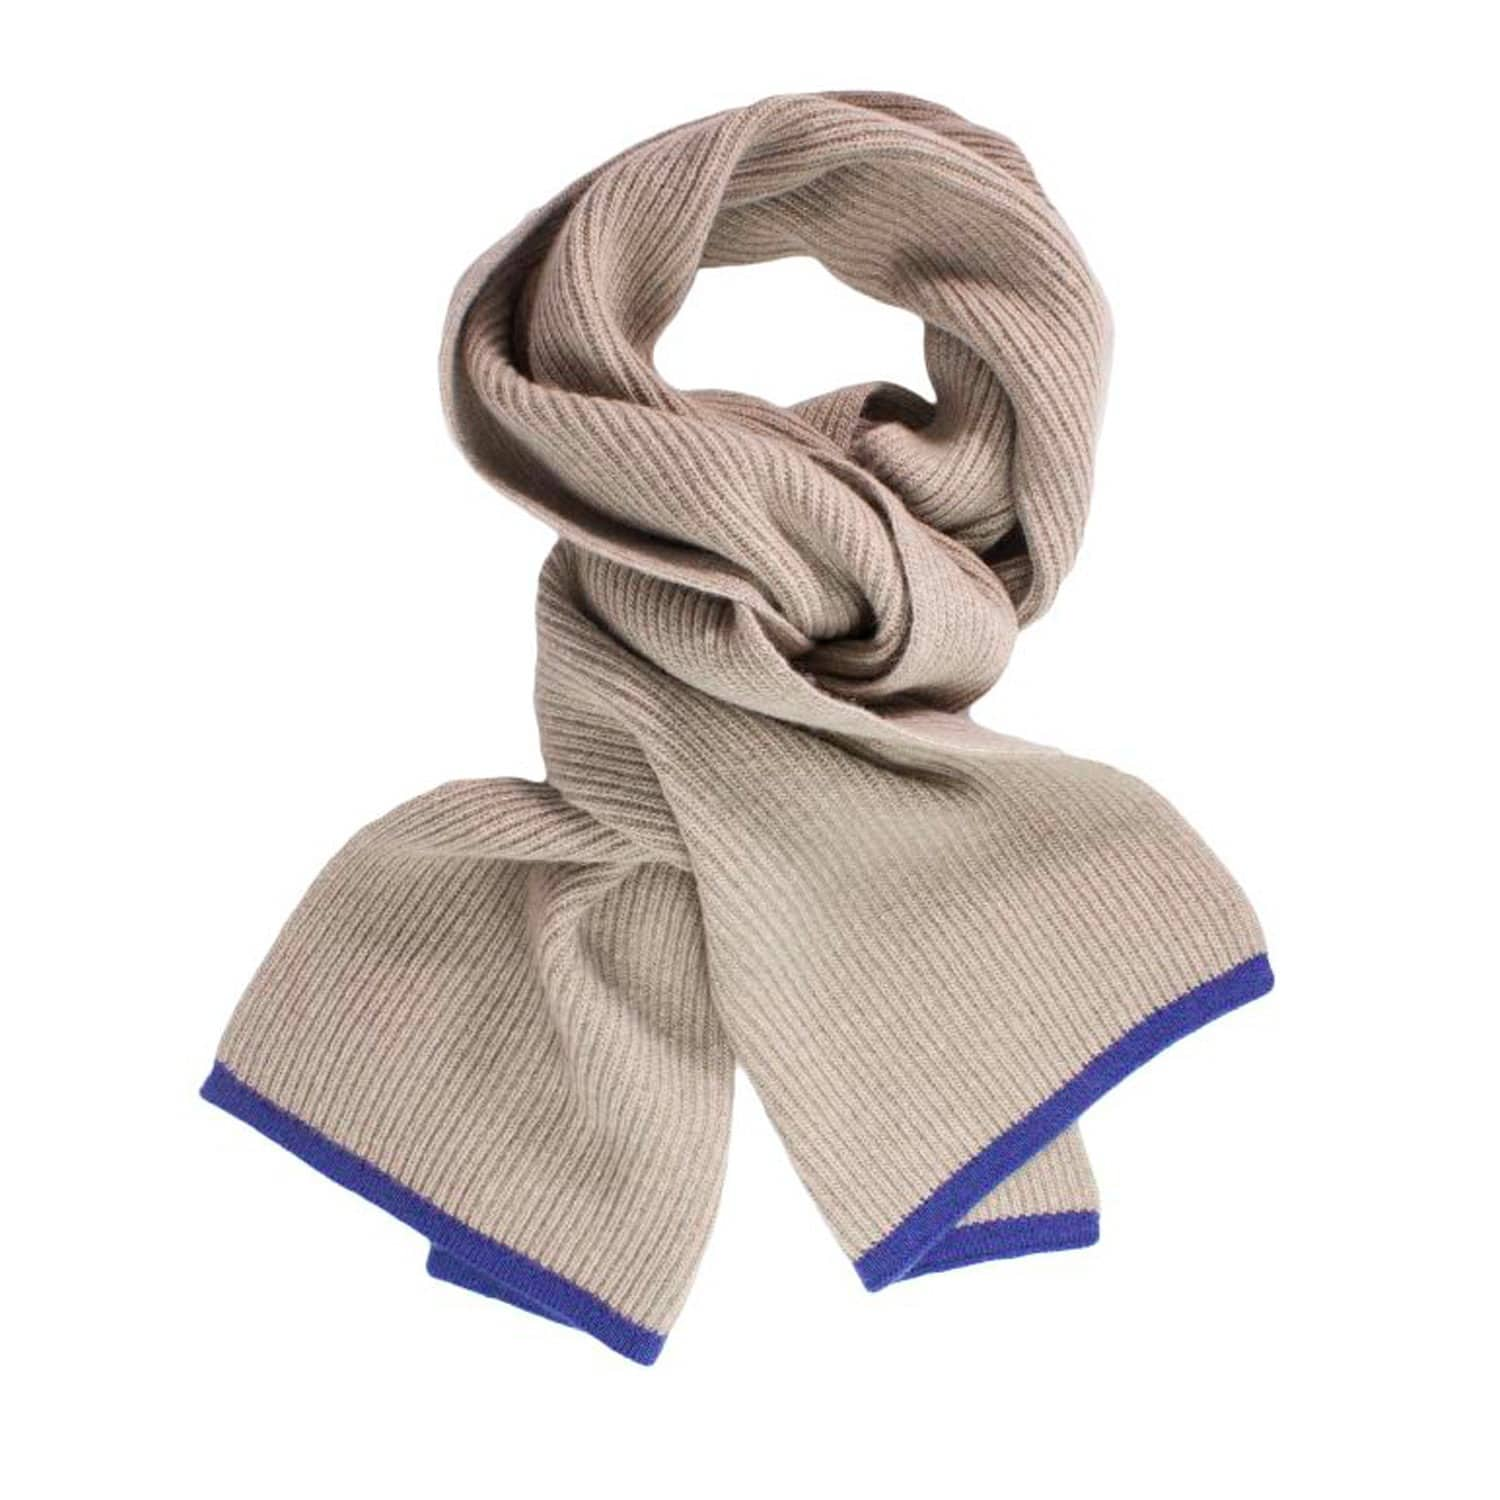 d77d63920 Beige Petrol Blue Small Ribbed Wool & Cashmere Scarf | 40 Colori ...